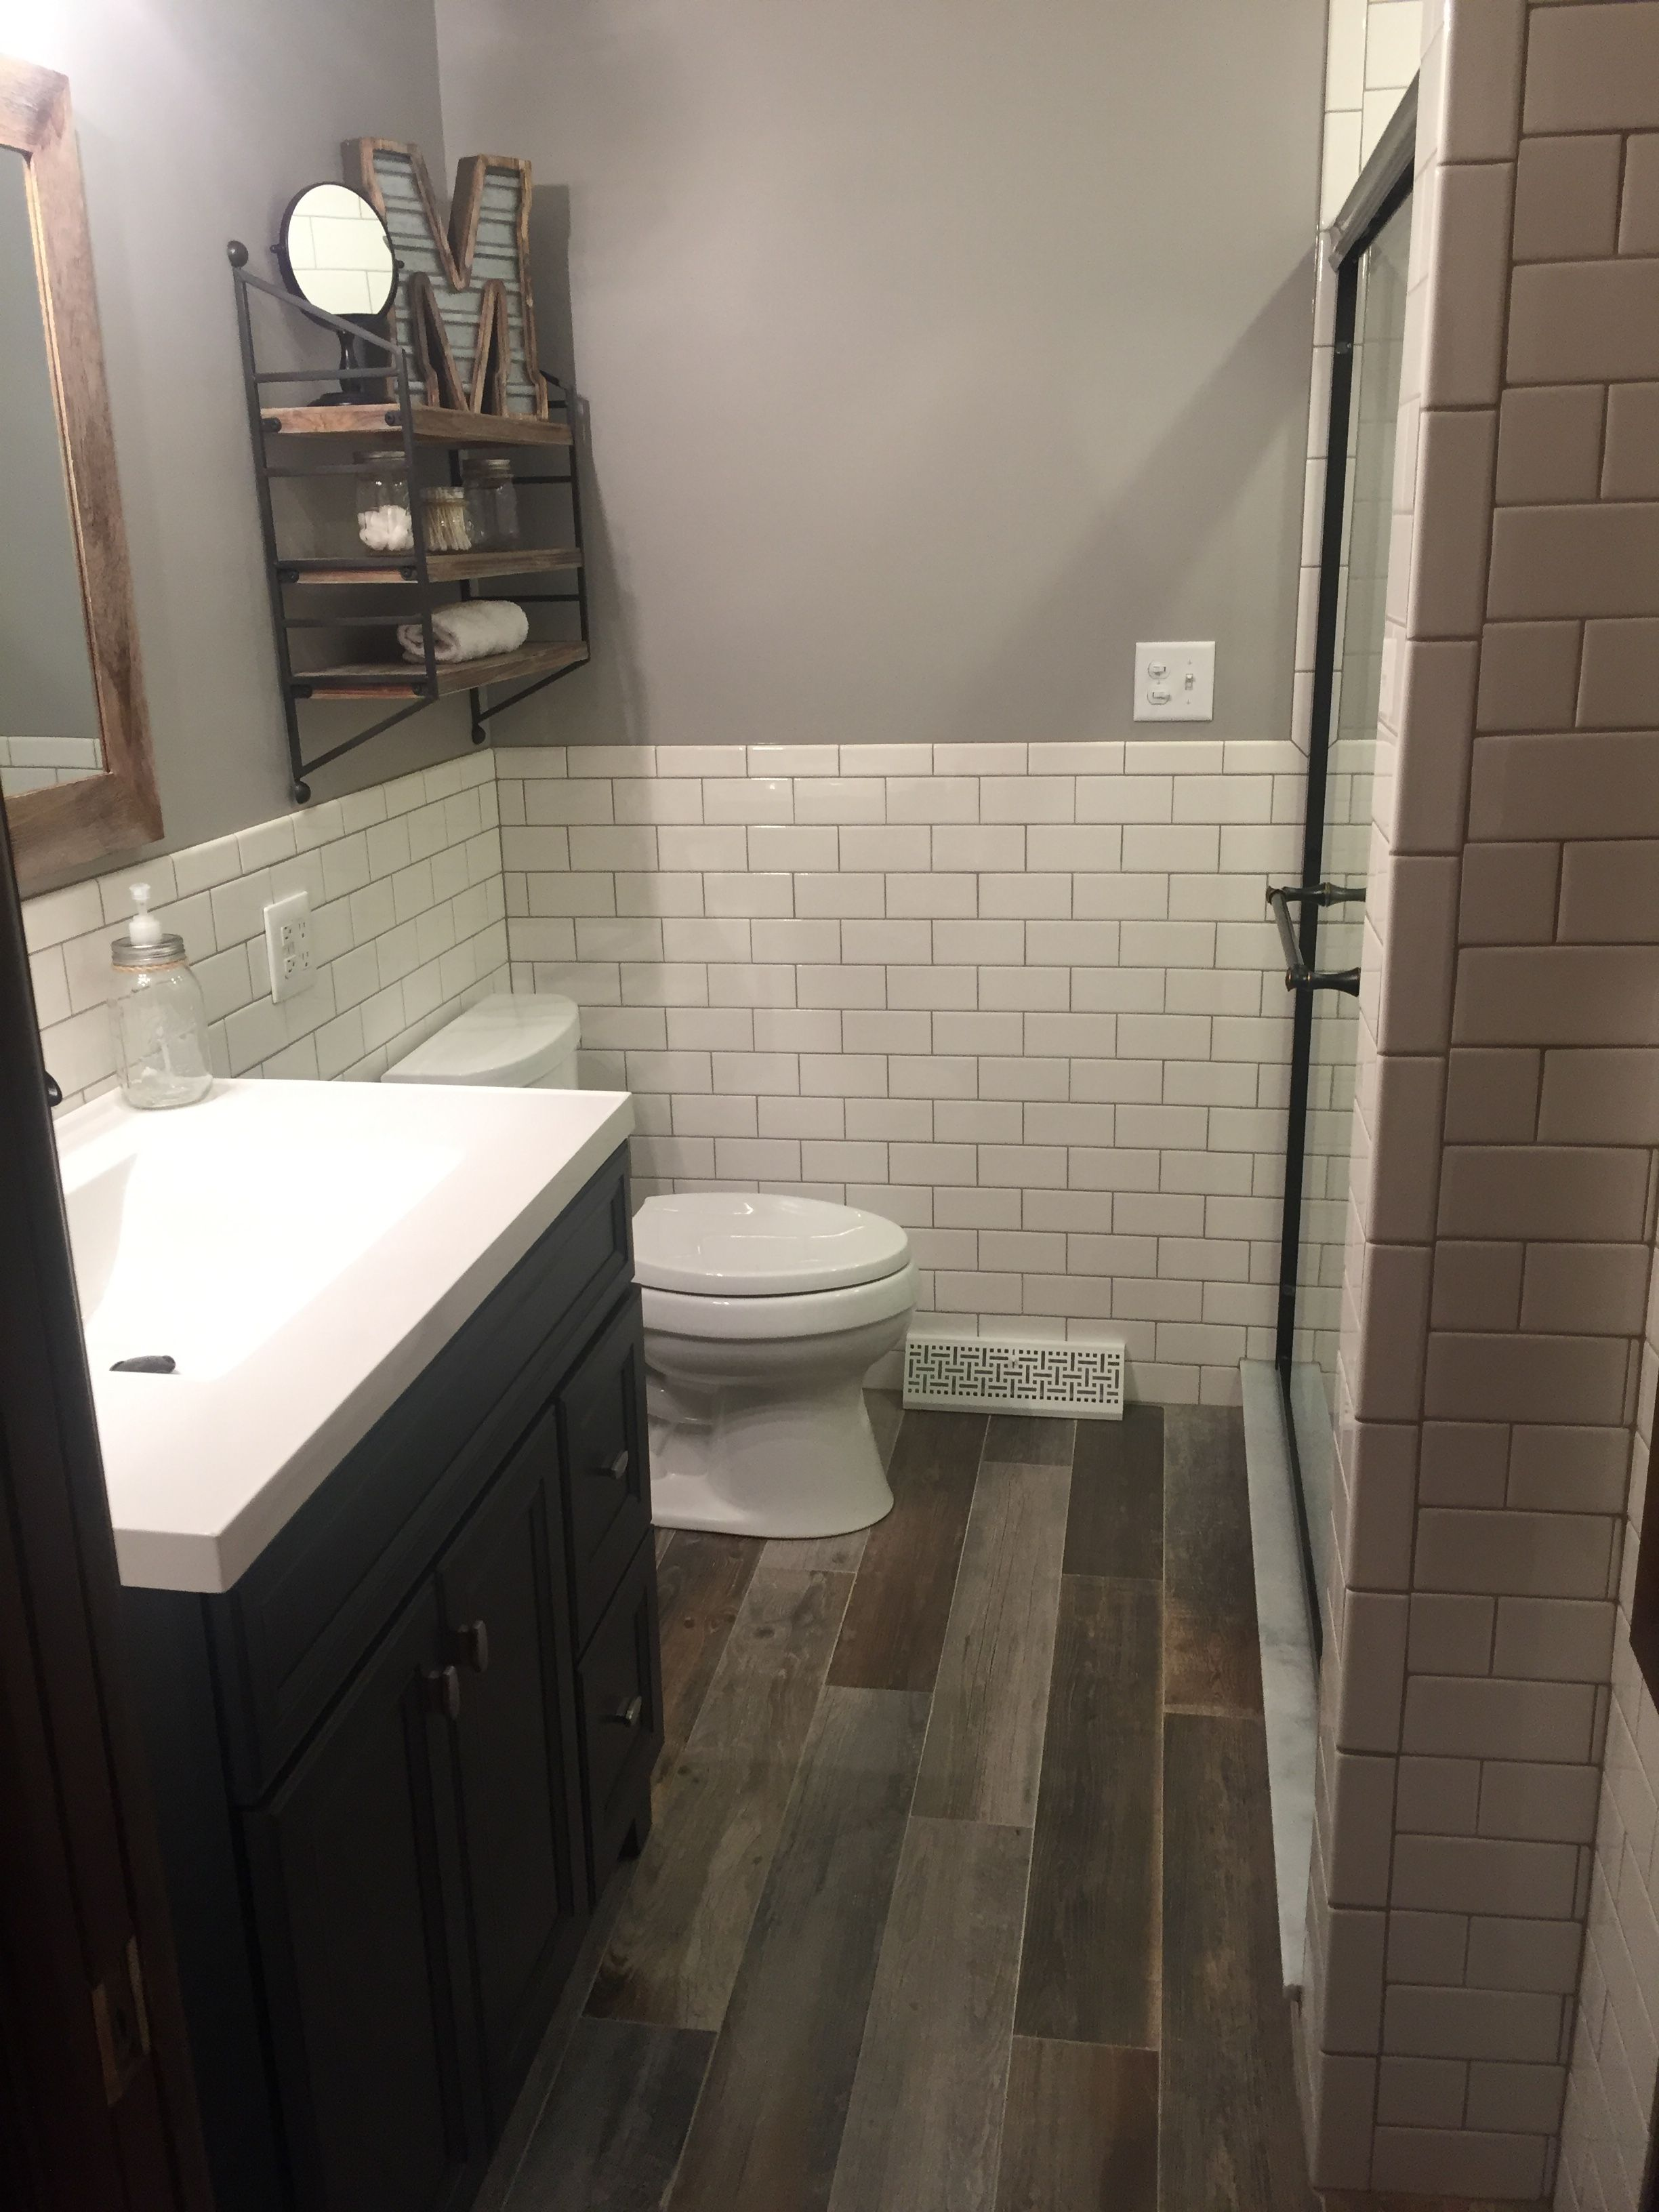 Subway Tile Bathroom Designs Remodel Modern Rustic Bathroom With White Subway Tile And